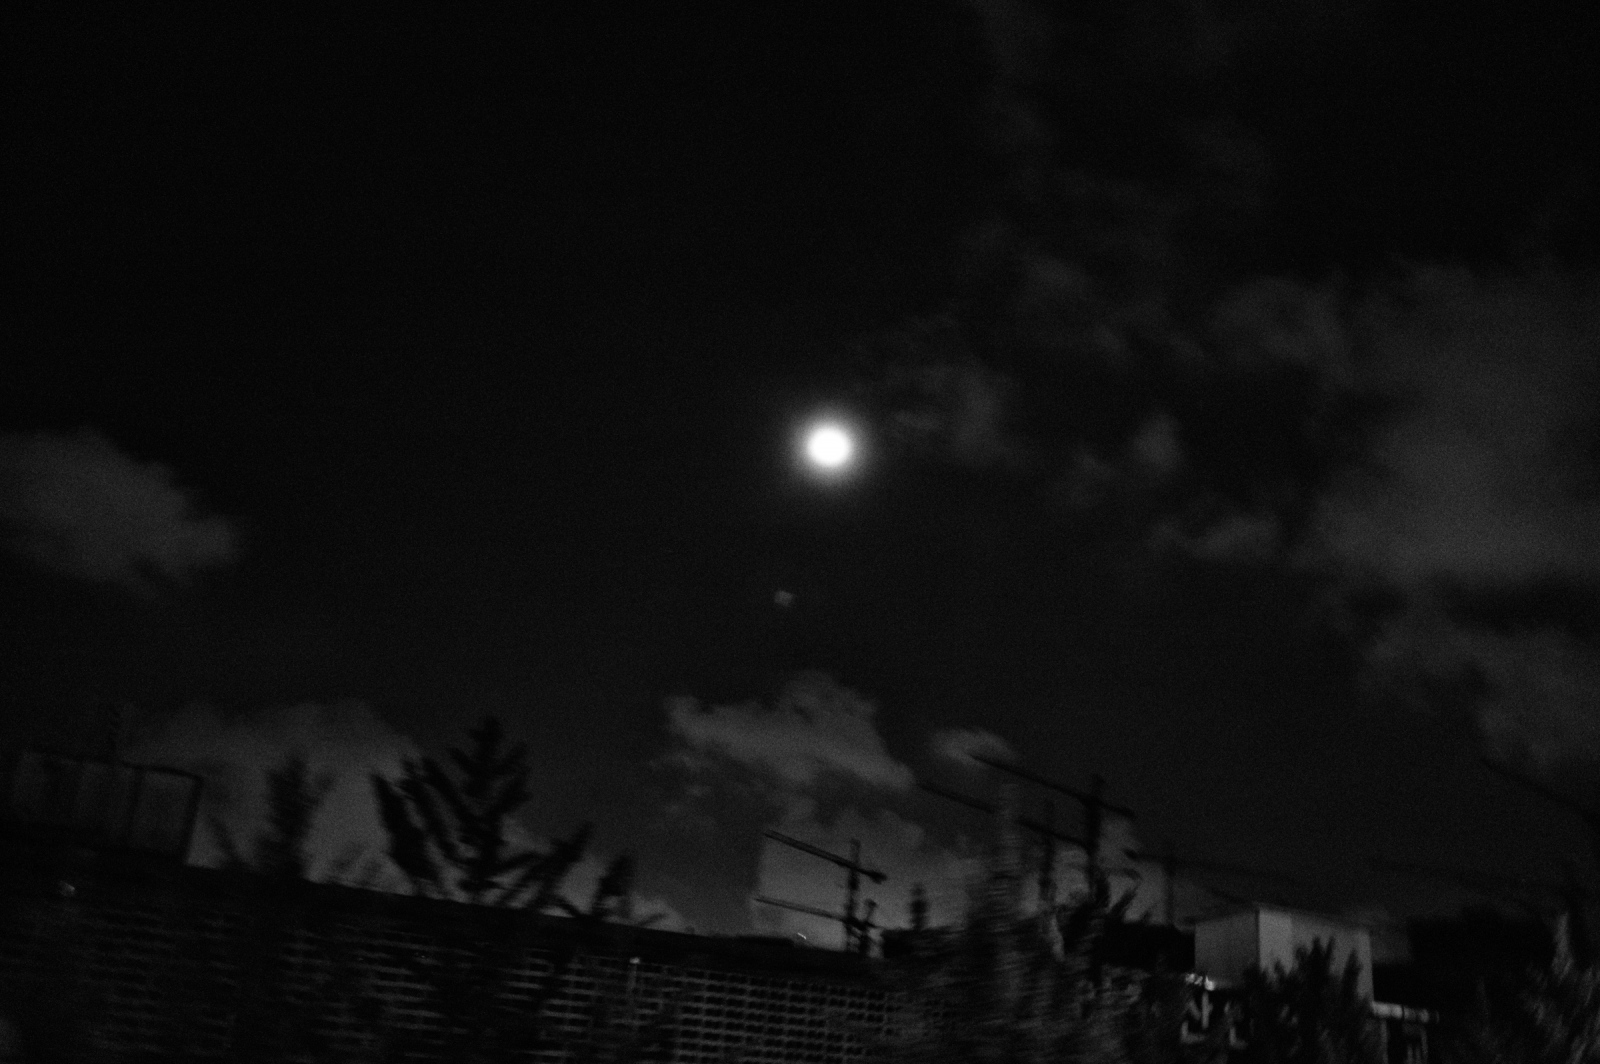 The moon over a construction site in Mapo, Aug. 15, 2013, Seoul, South Korea.